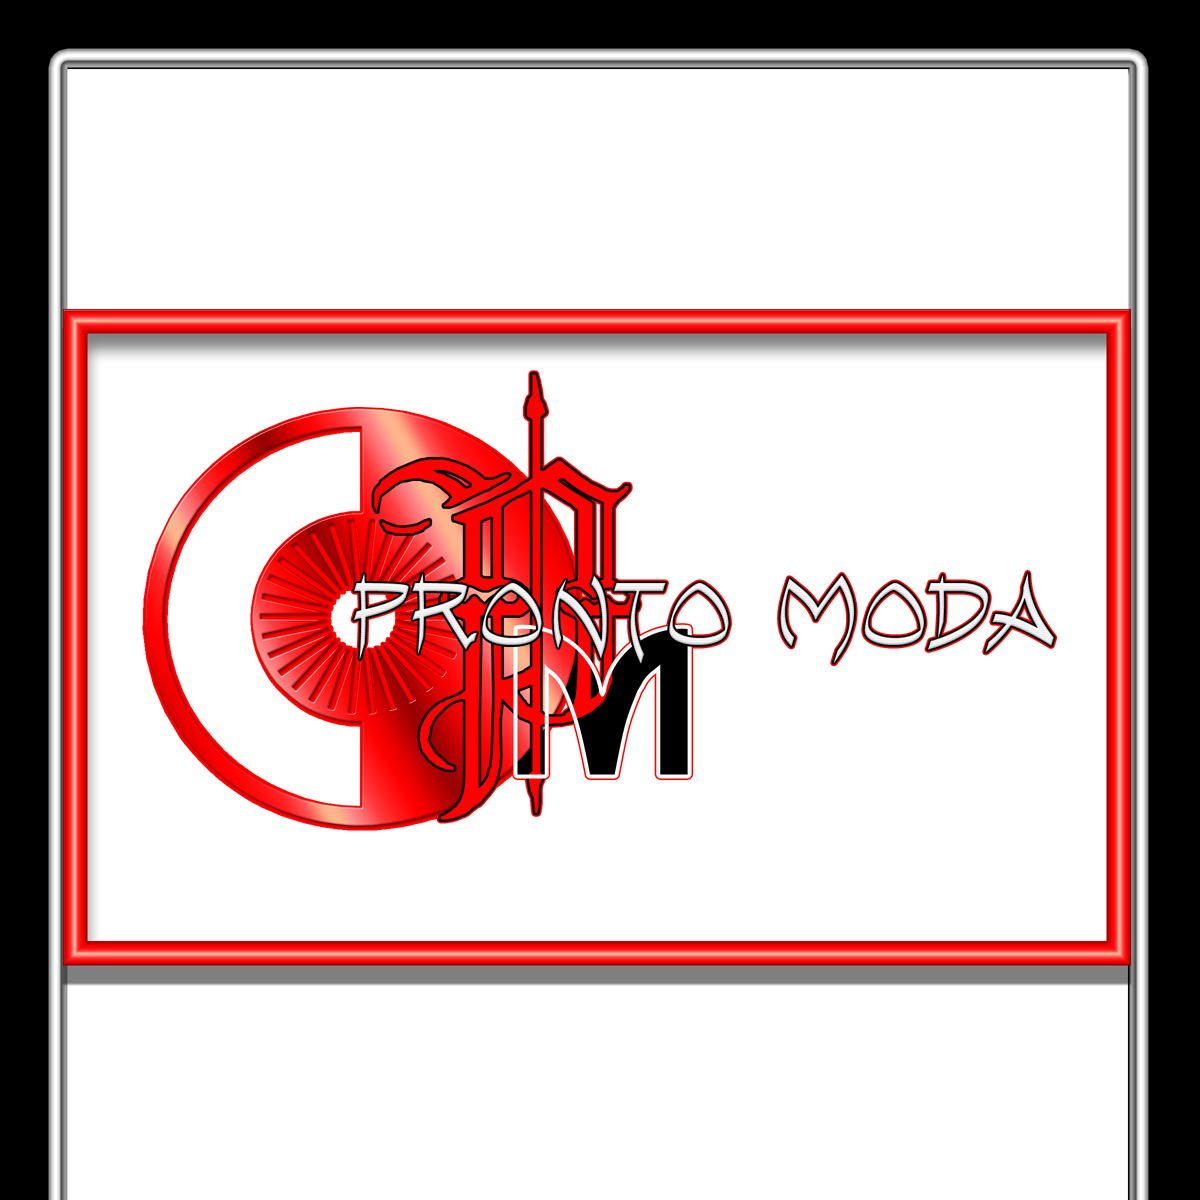 Logo Design by MITUCA ANDREI - Entry No. 31 in the Logo Design Contest Captivating Logo Design for Pronto moda.